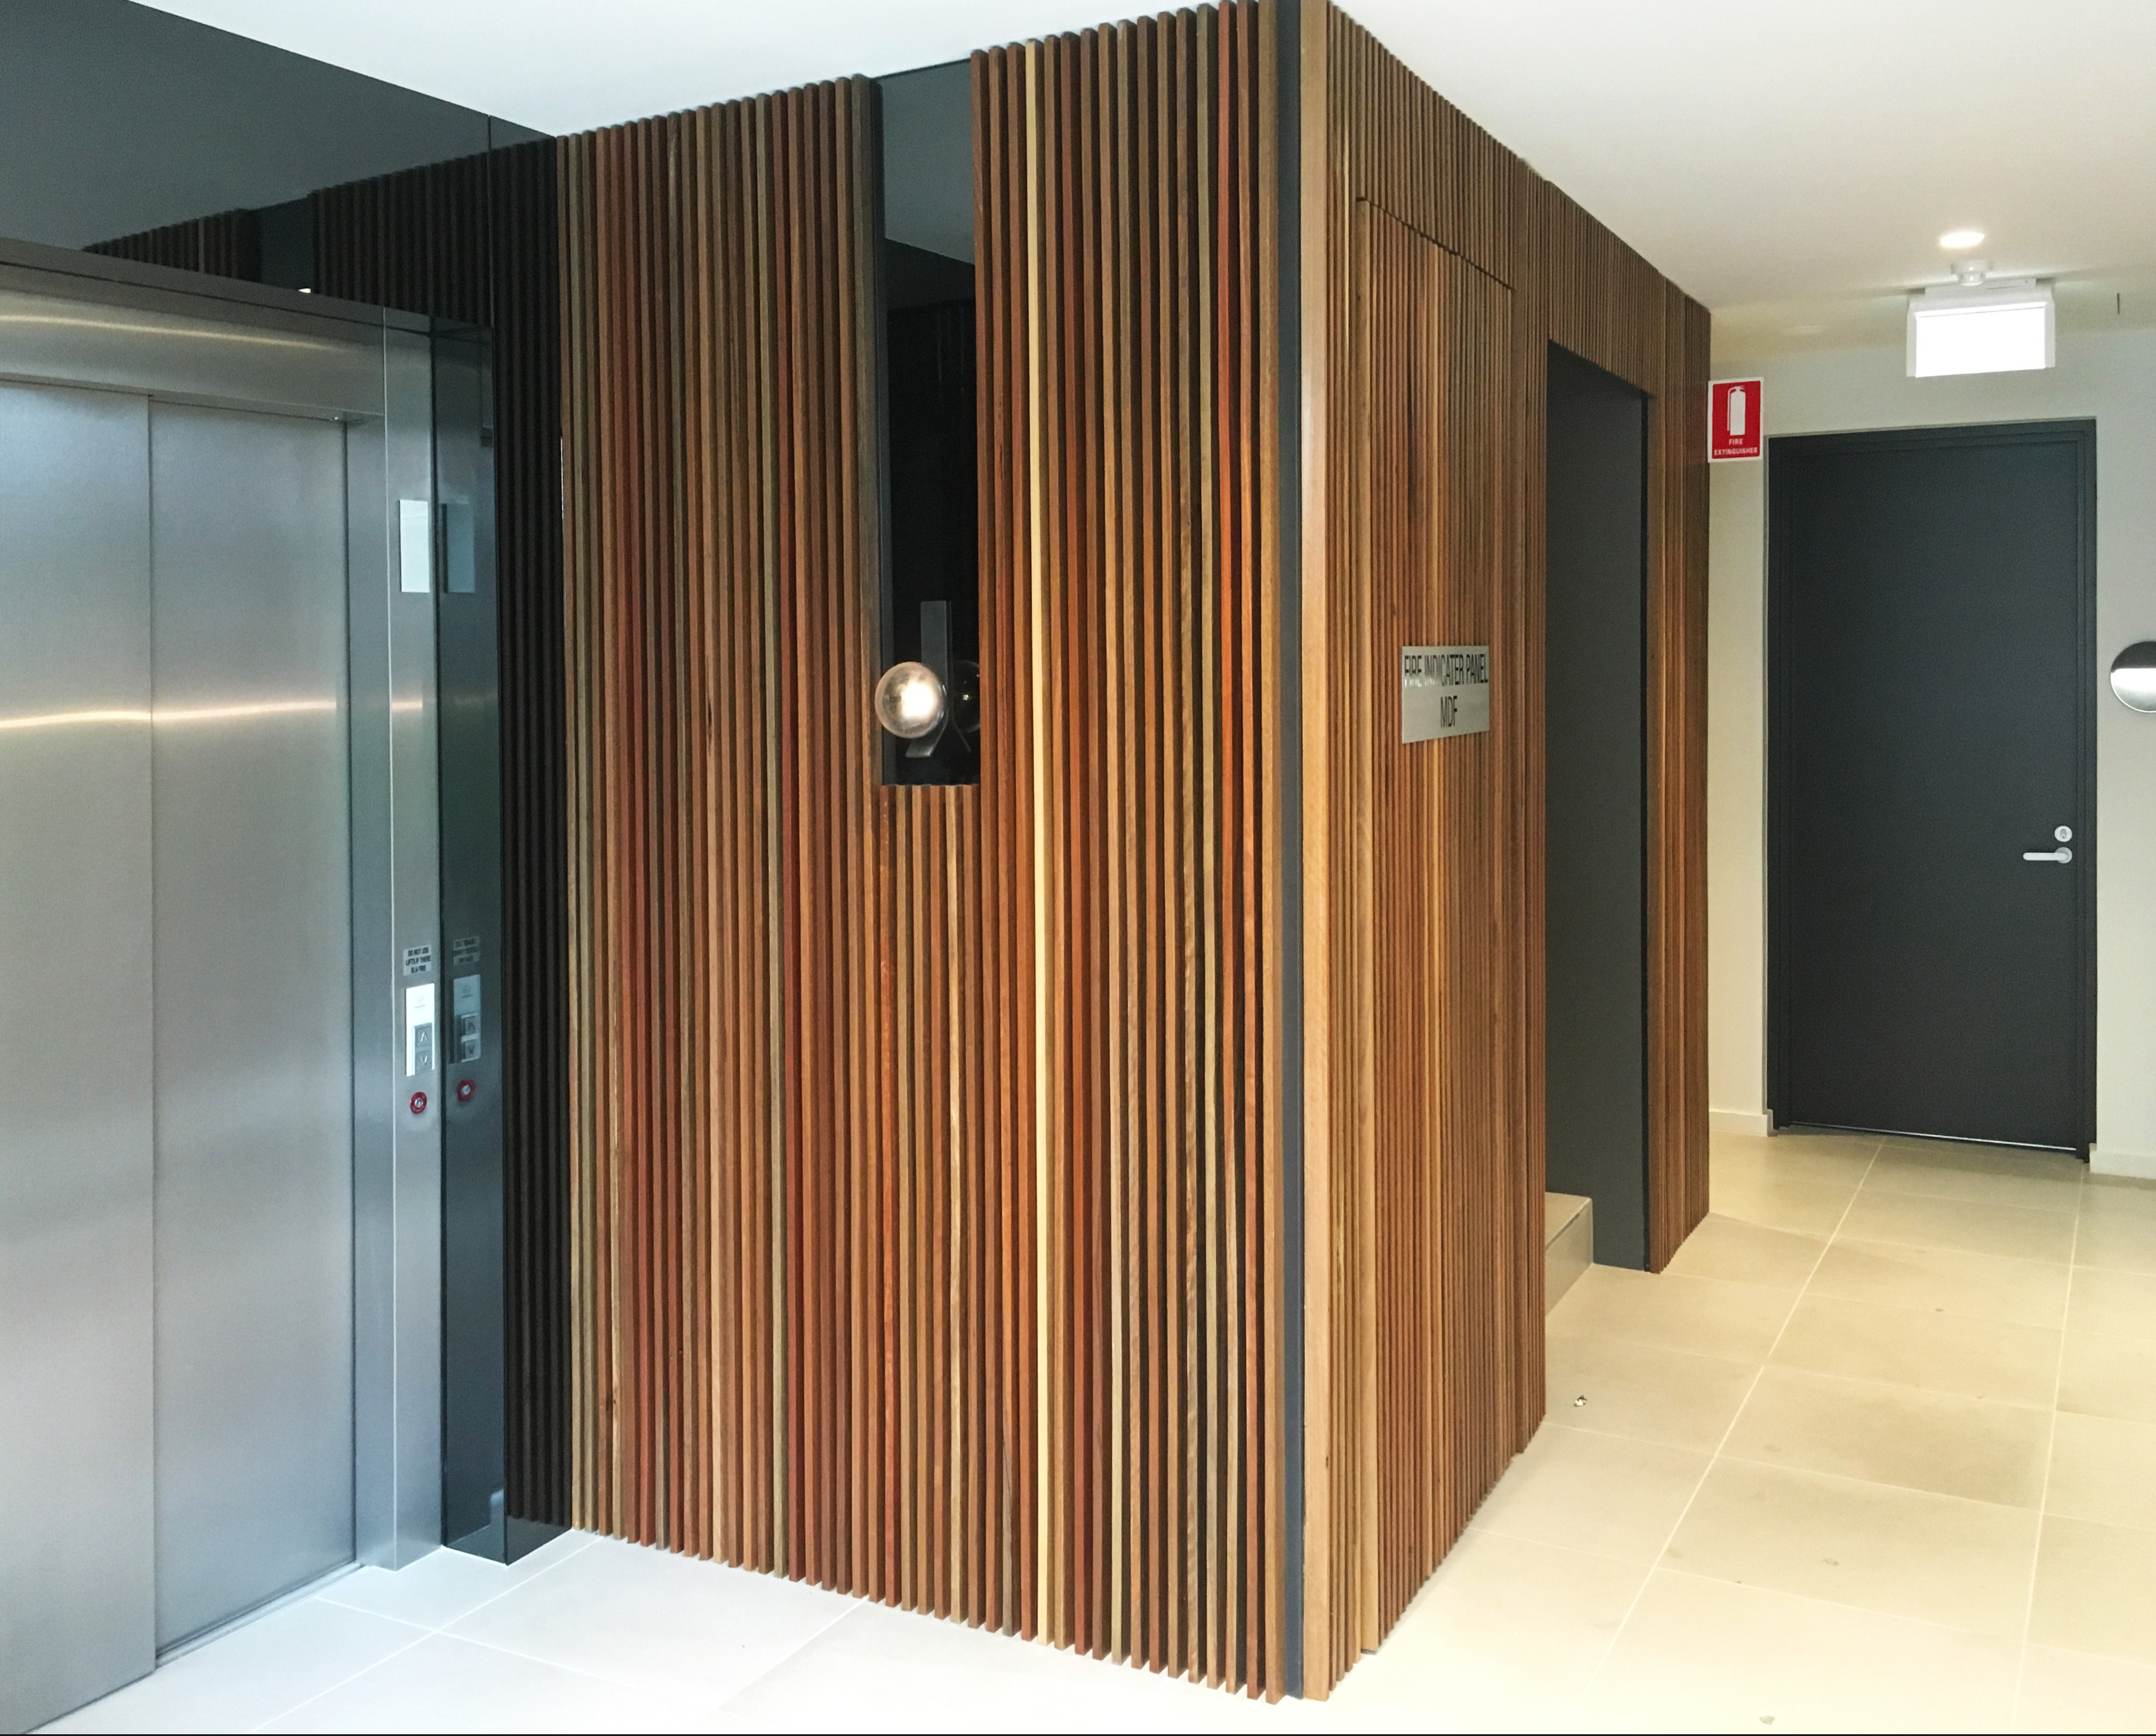 CAULFIELD APARTMENTS FOYER